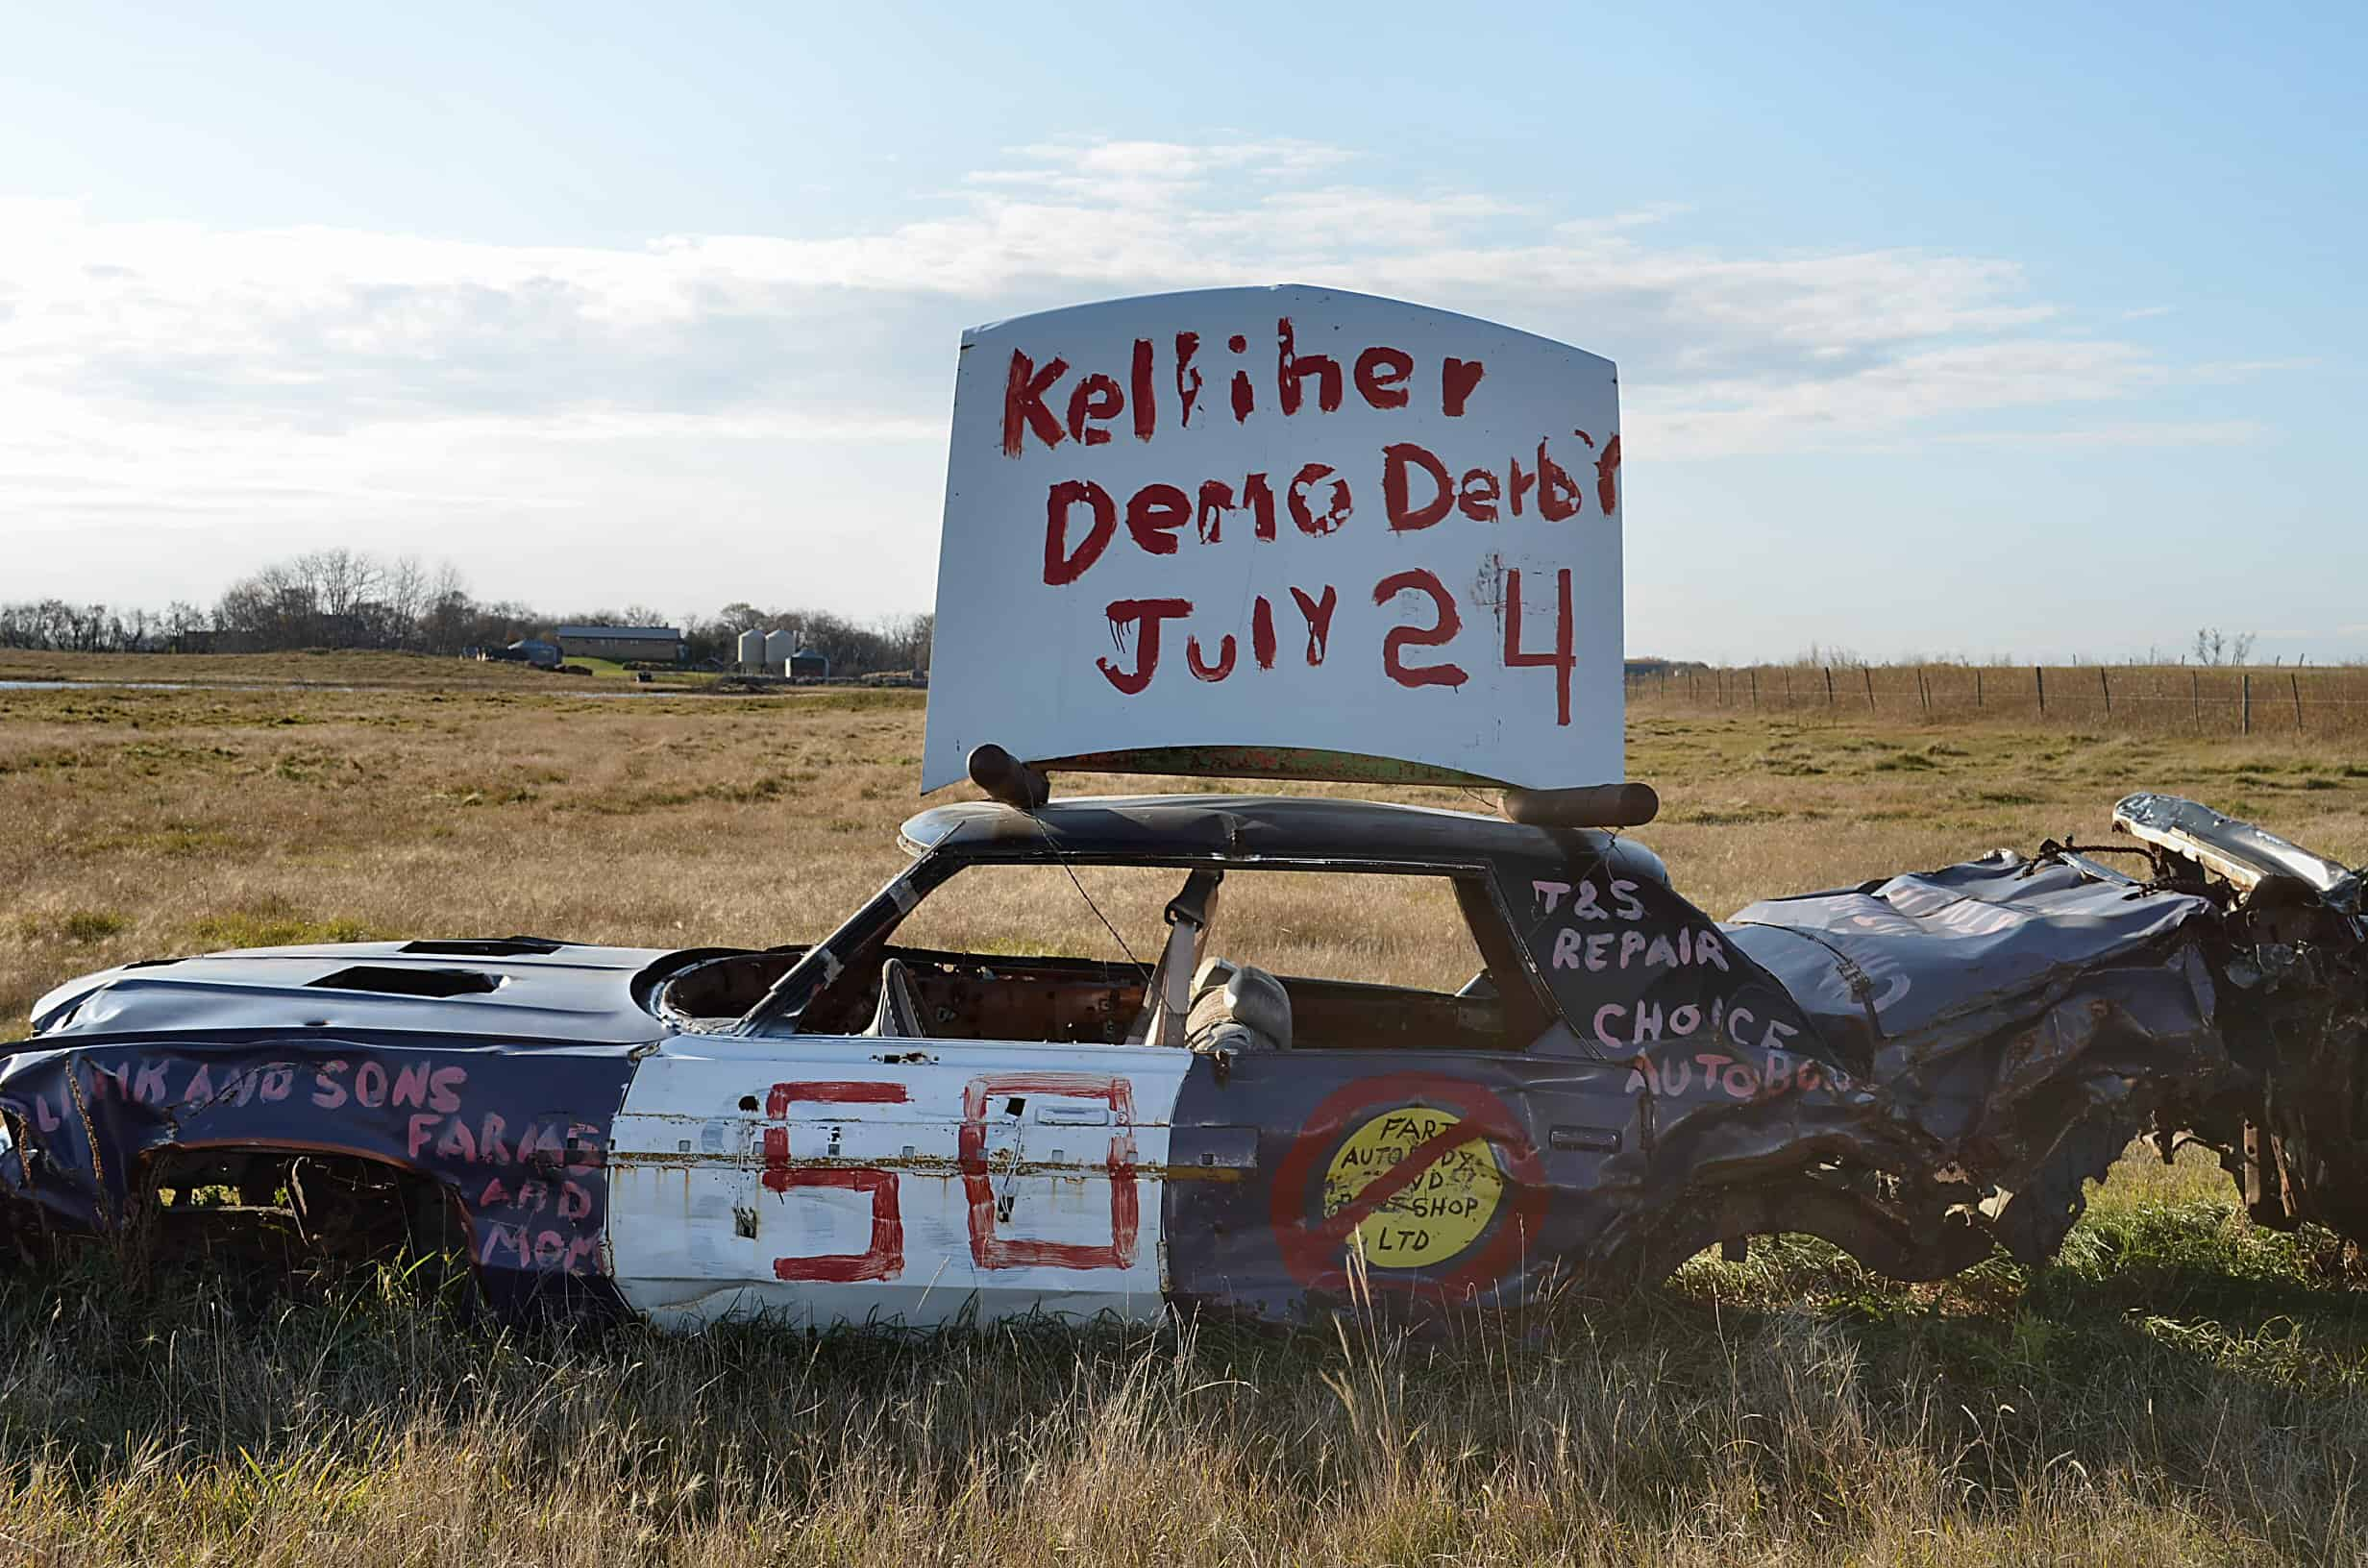 demo derby car sign